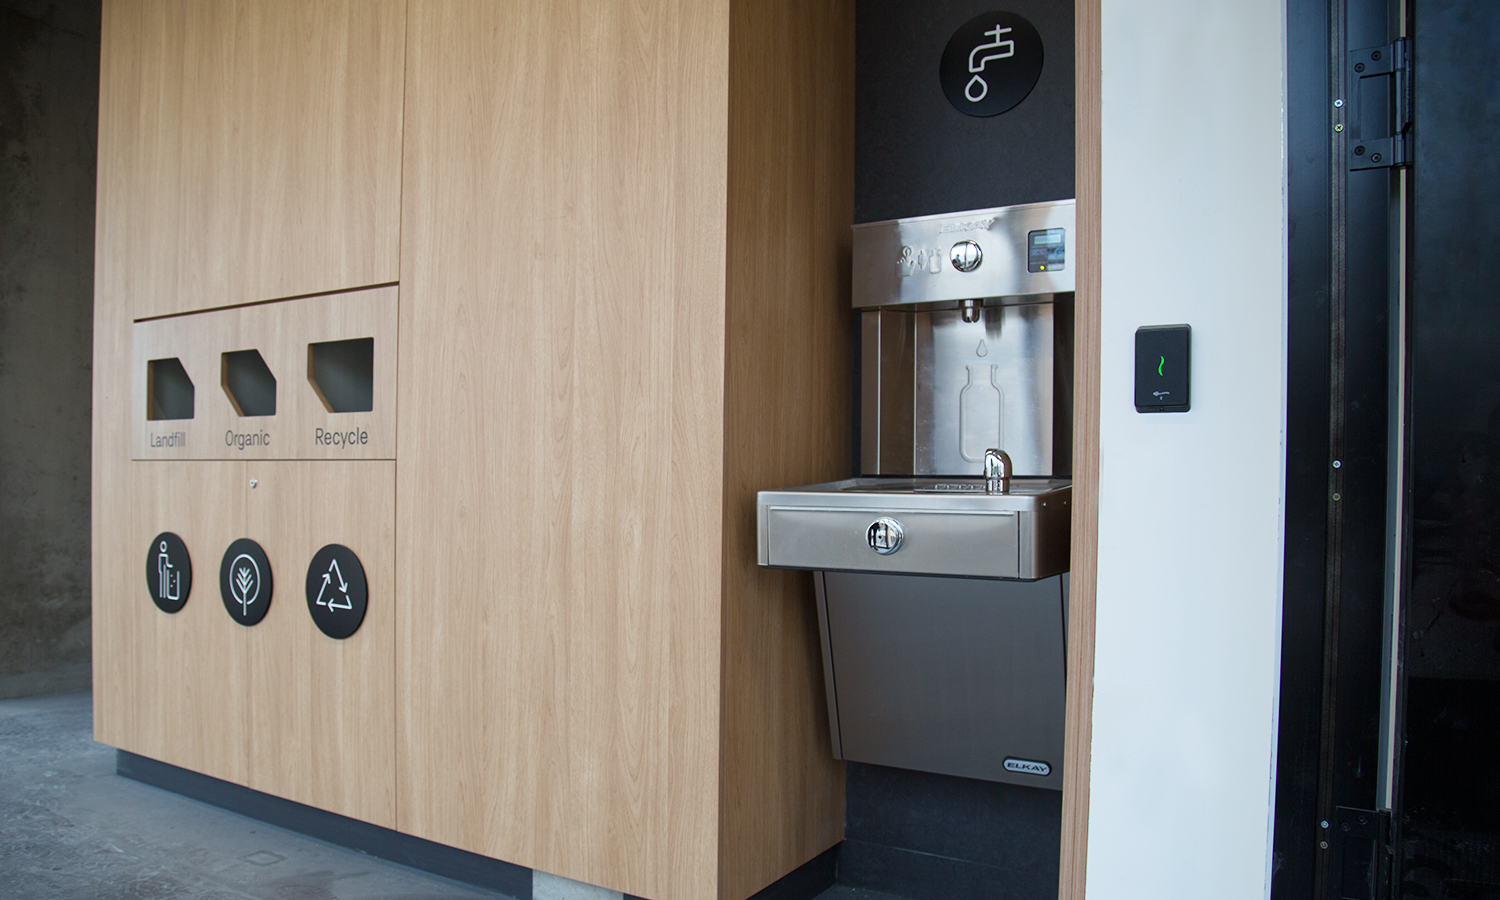 Drinking fountain station positioned next to smart recycle facility